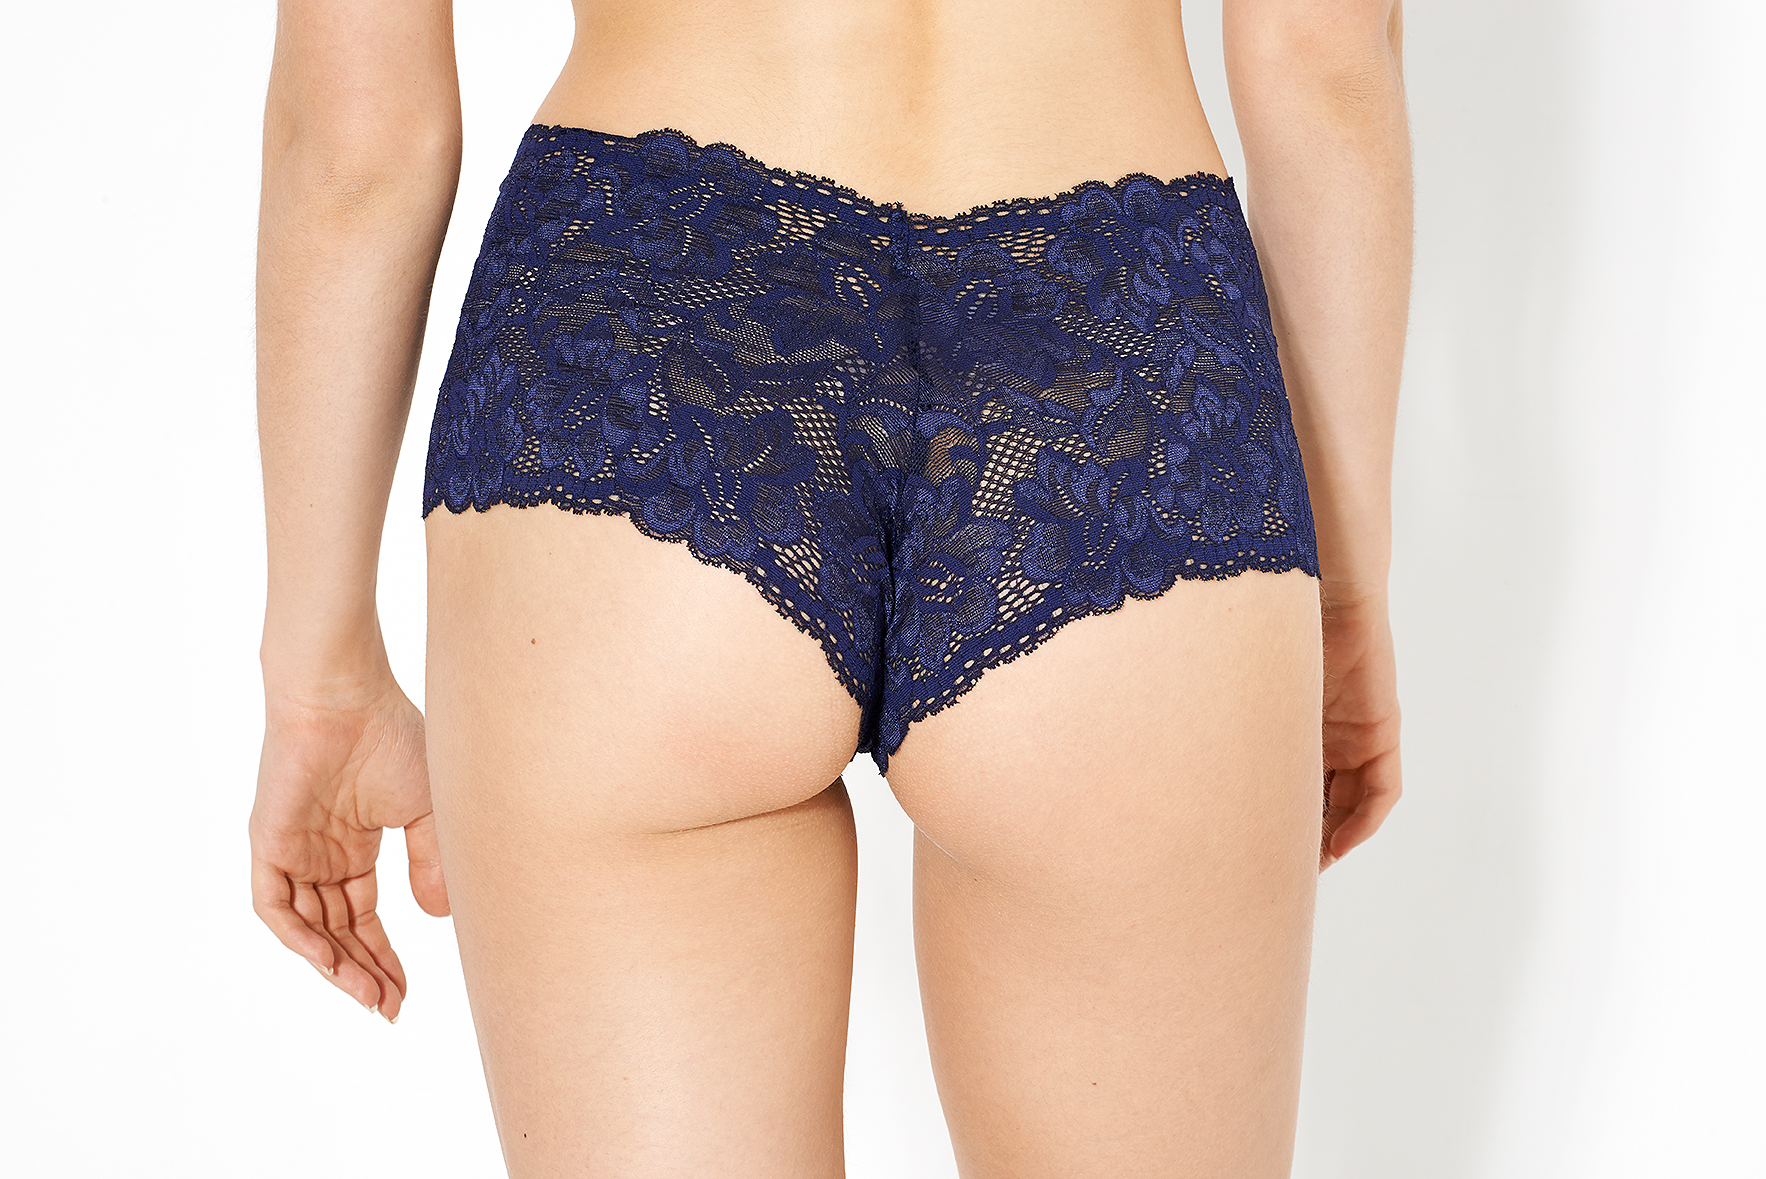 noteworthy-knicker-who-made-your-pants-uk-ethical-lingerie-company-french-knickers-04